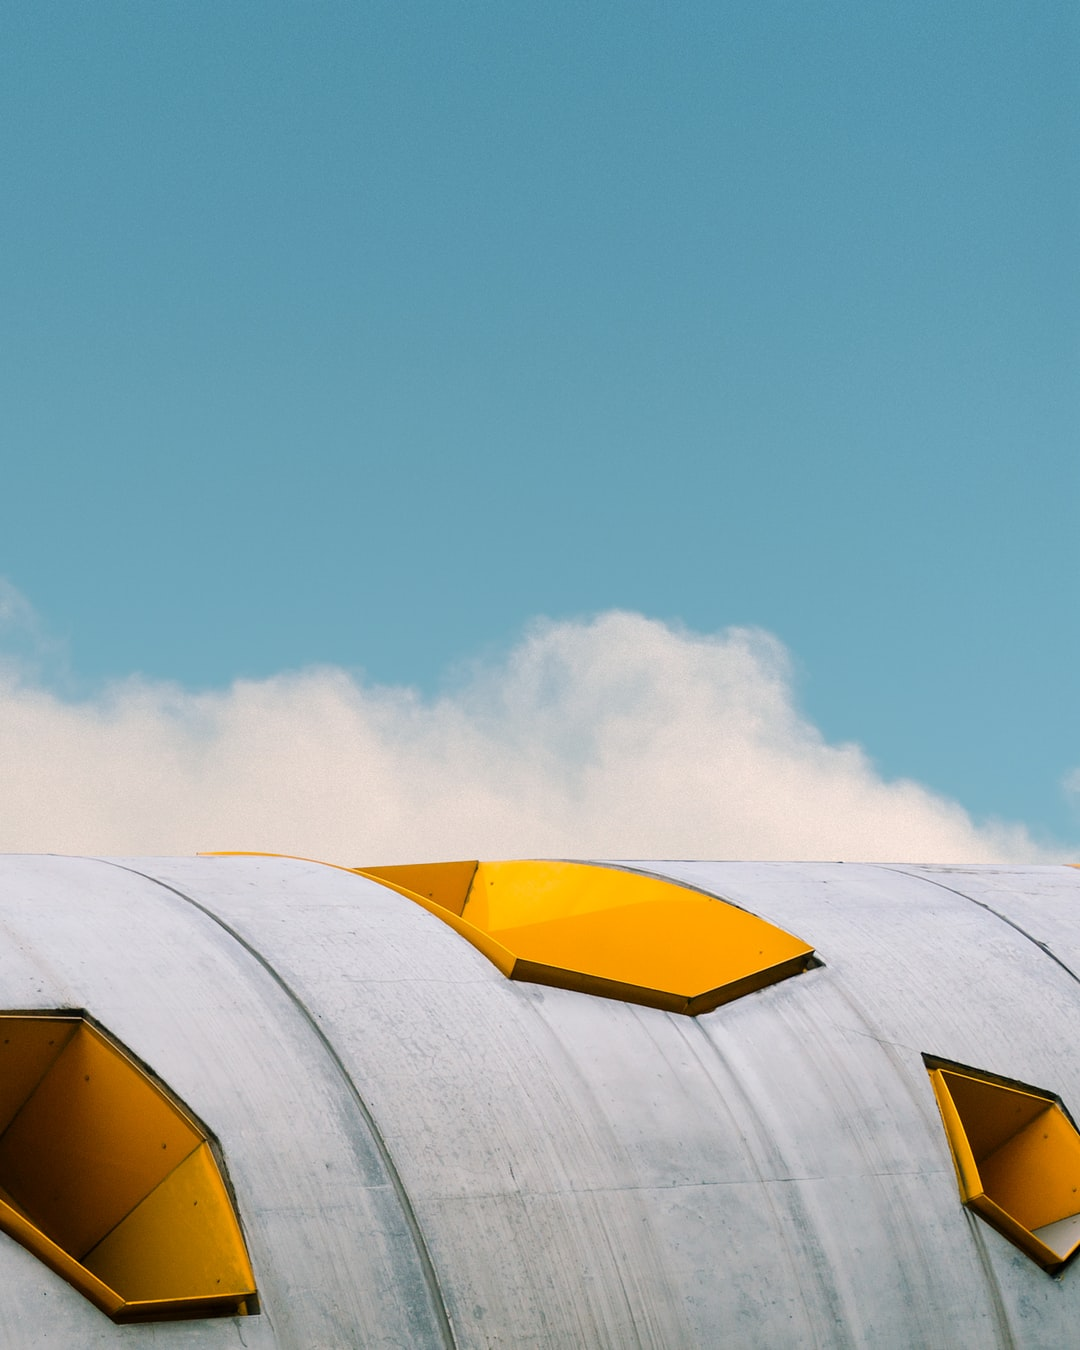 This photo is the remix of my own shot of this industrial concrete building and a sky captured by Samuel Zeller on Unsplash.